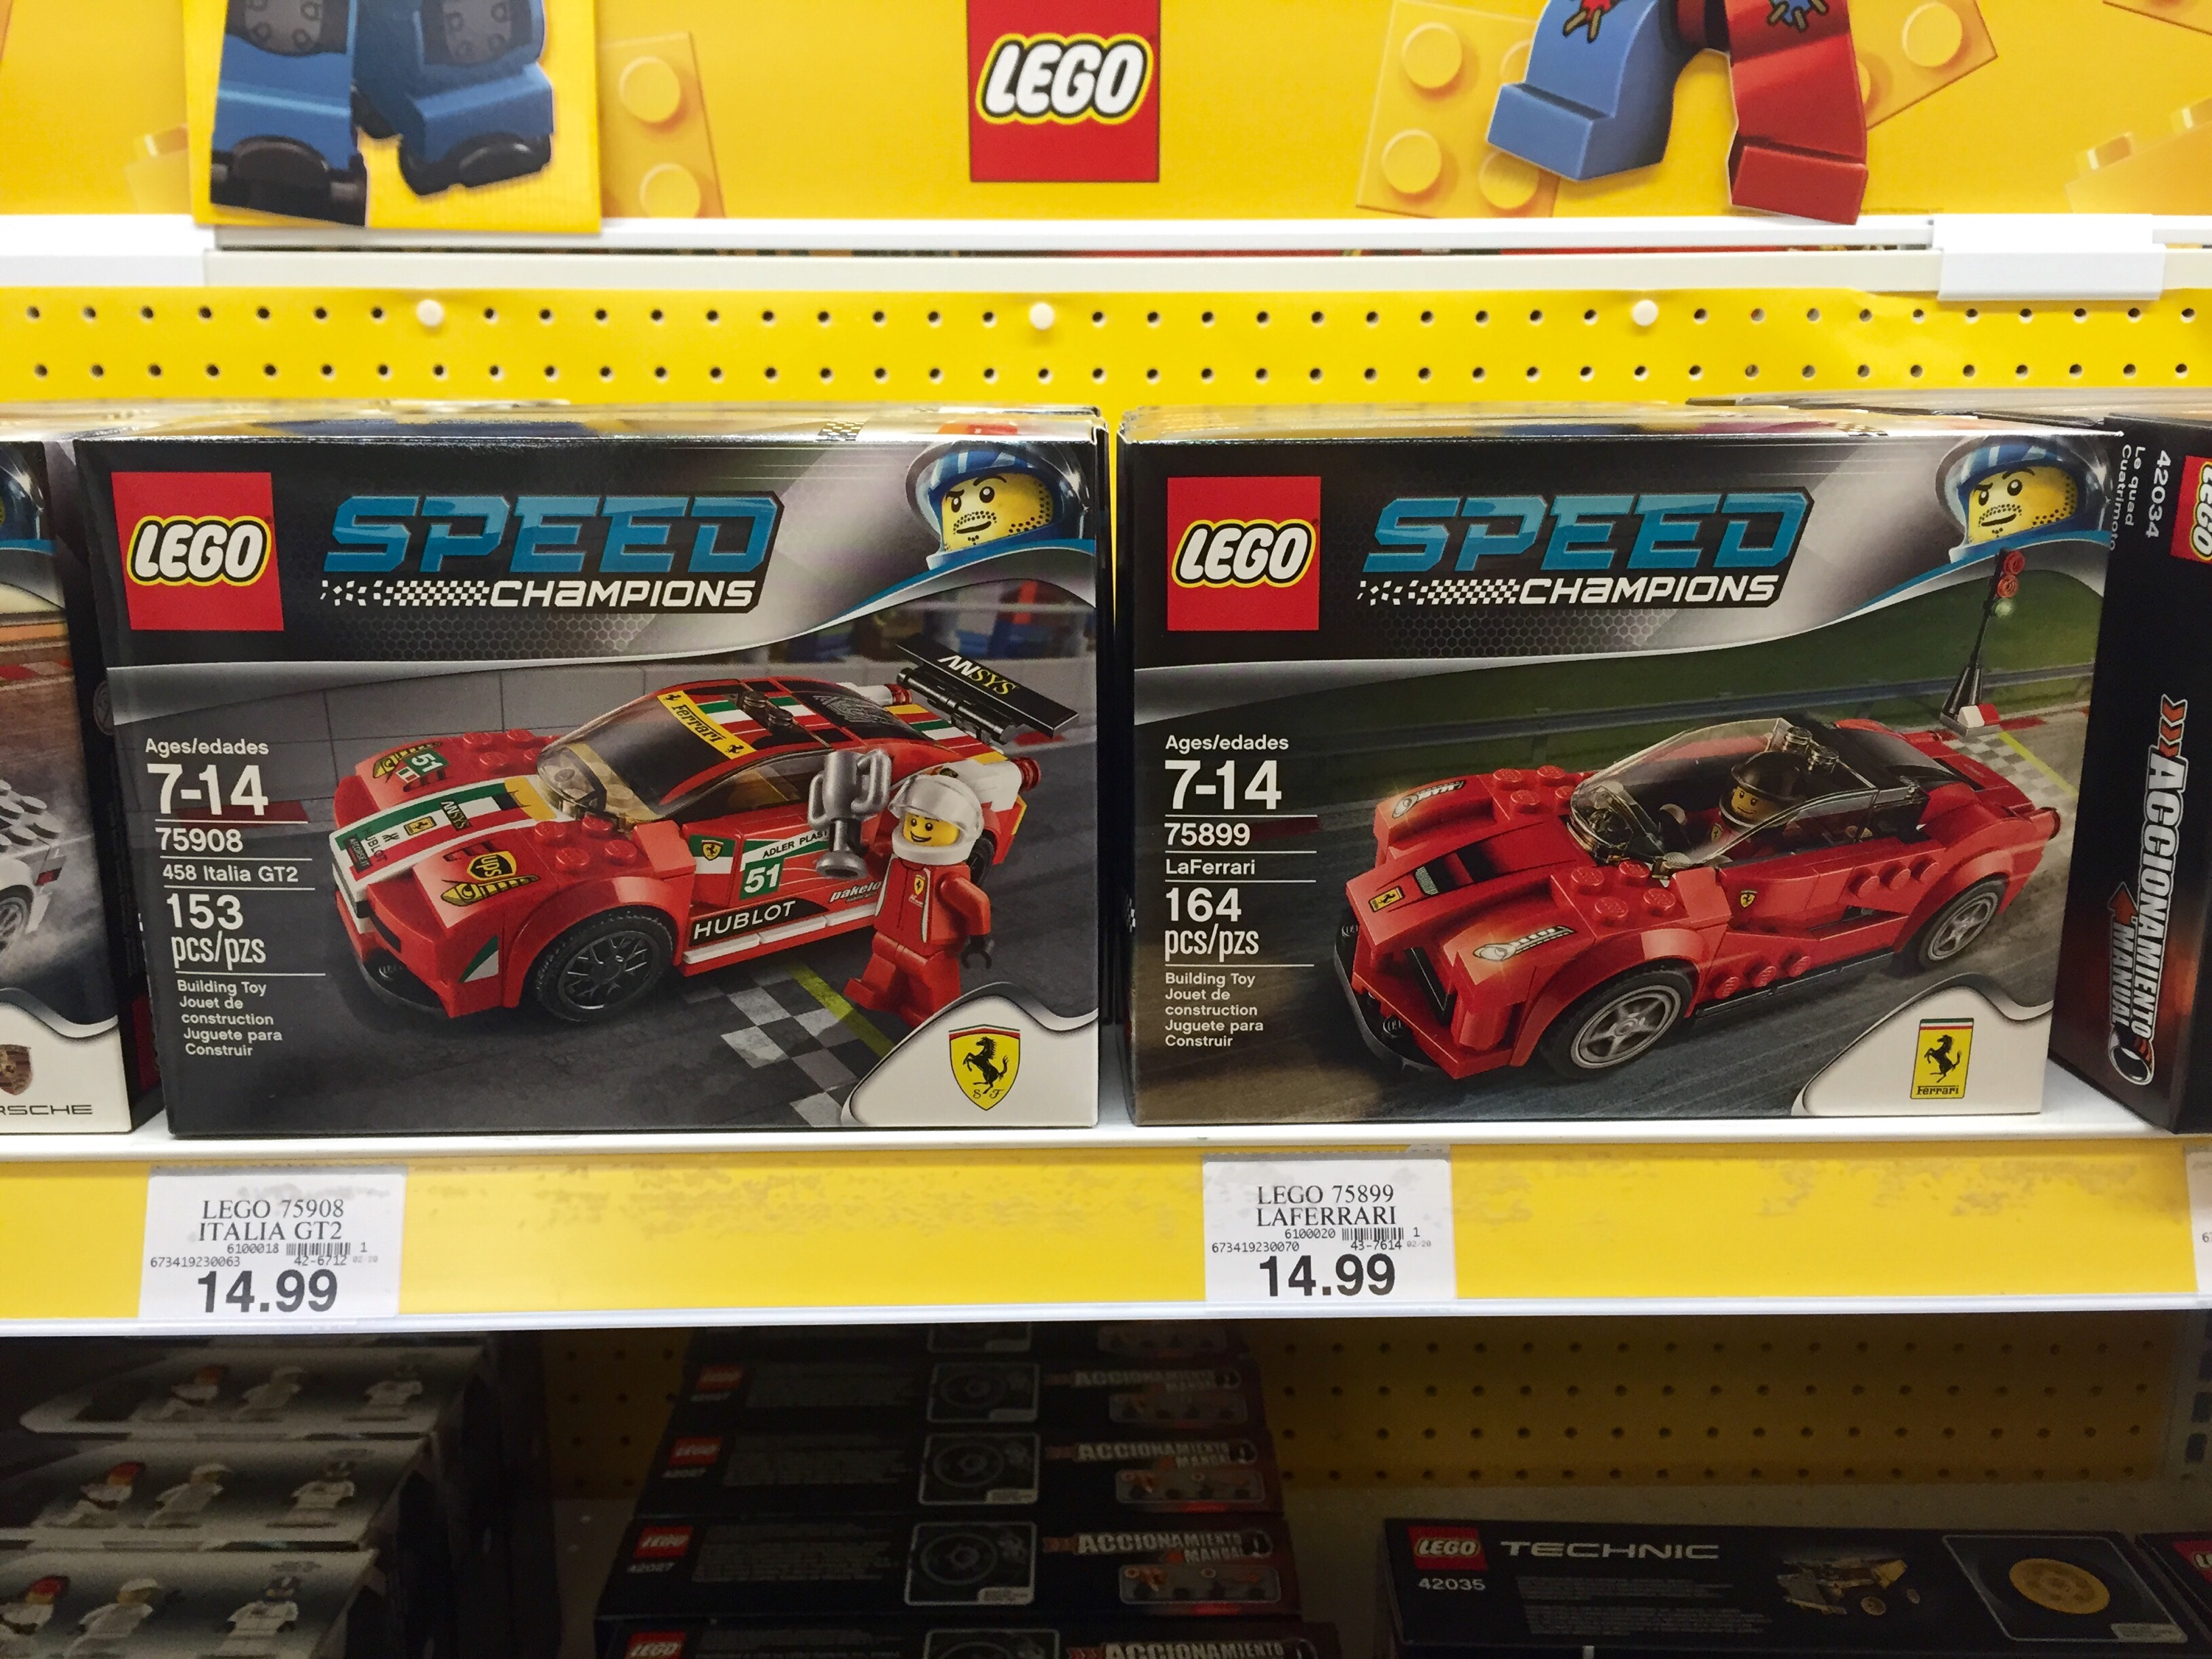 lego speed champions sets released in stores photos bricks and bloks. Black Bedroom Furniture Sets. Home Design Ideas